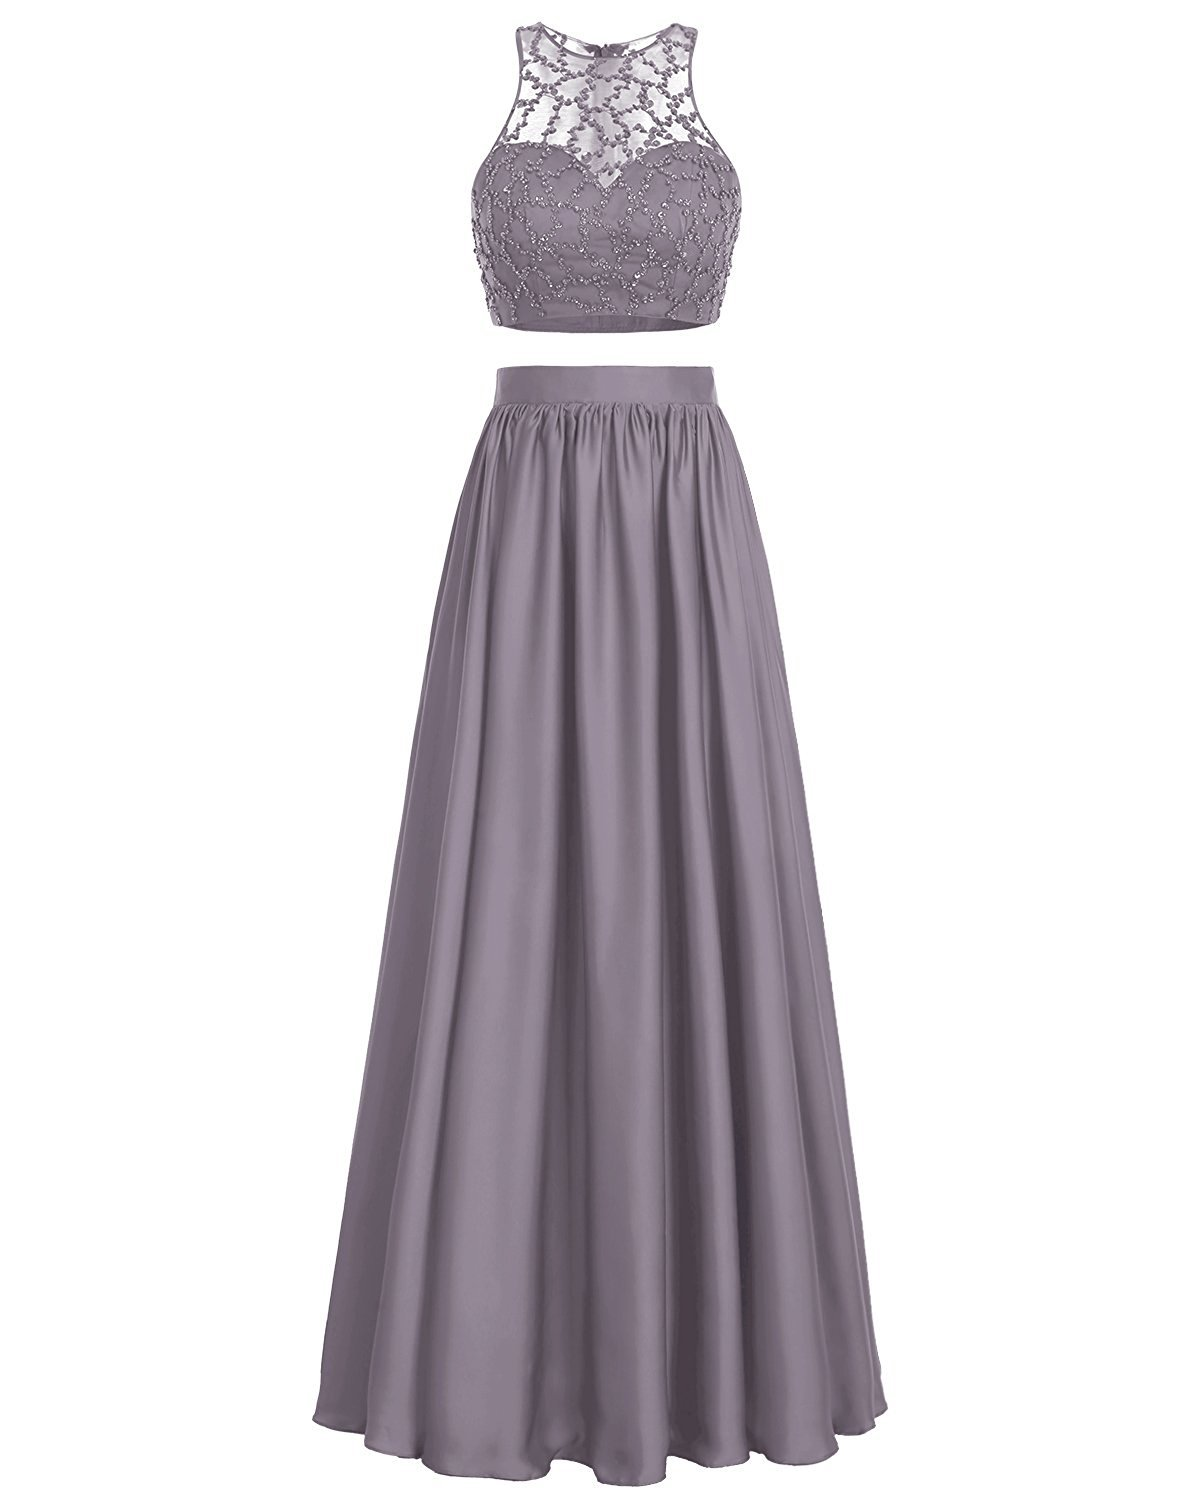 Primary image for Long Satin Two Piece Prom Dress Sequins Sleeveless Formal Evening Dress Grey